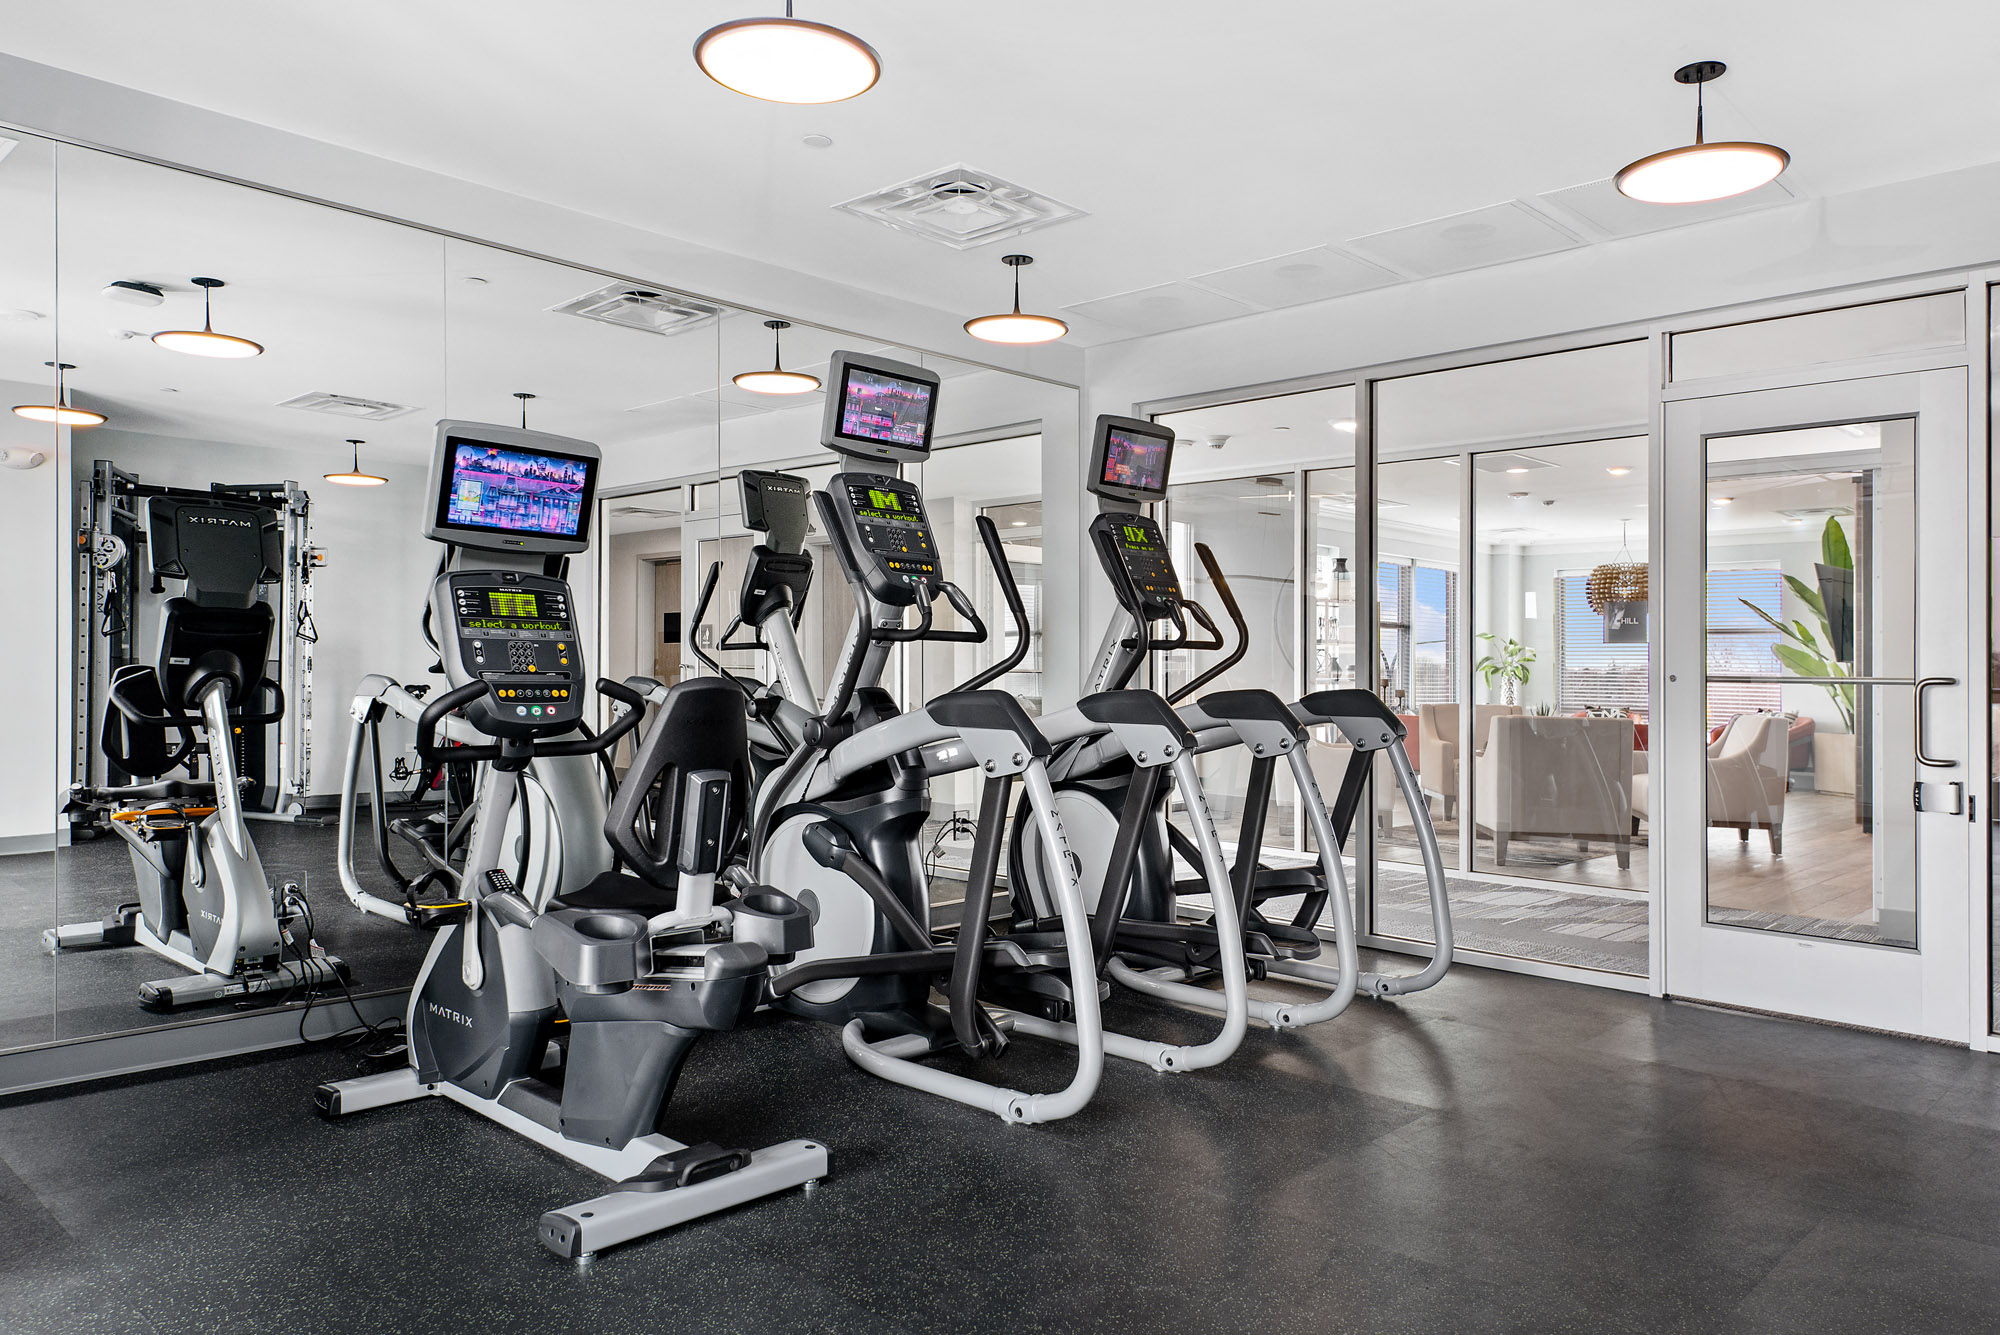 Exercise equippment in the fitness center including ellipticals